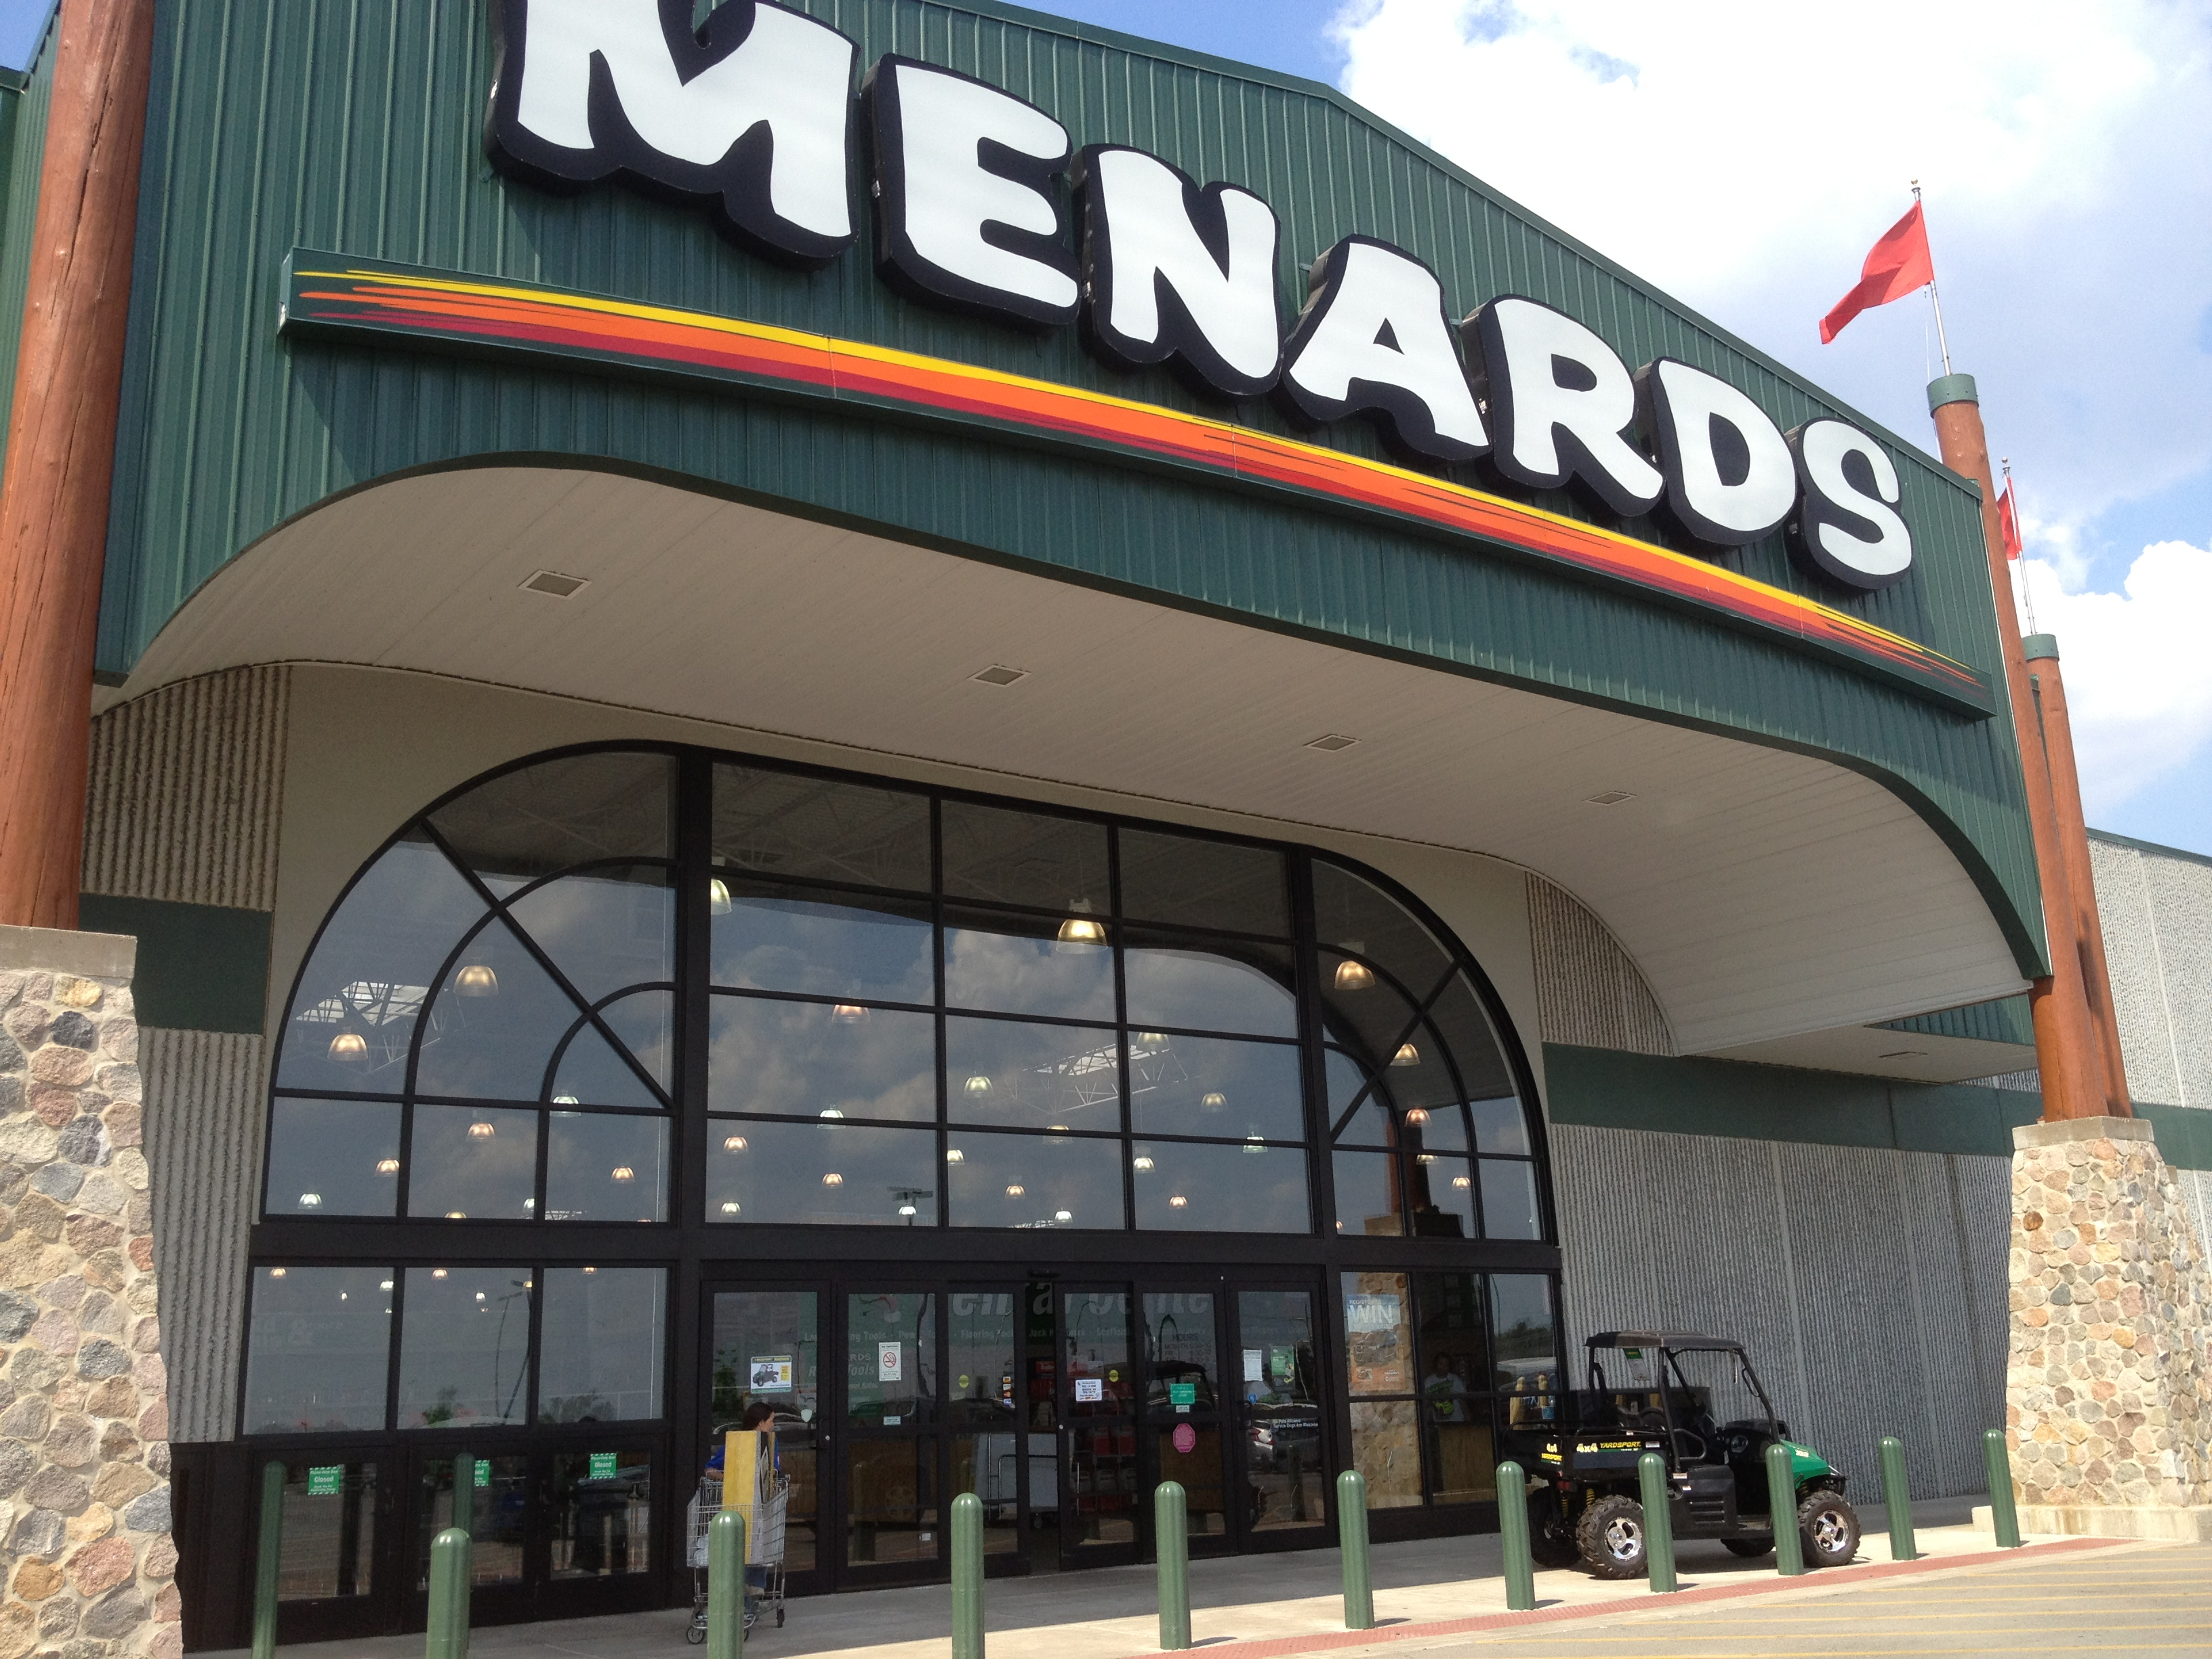 By Mike Kalasnik from Fort Mill, USA (Menards Marion, IL Uploaded by AlbertHerring) [CC BY-SA 2.0 (http://creativecommons.org/licenses/by-sa/2.0)], via Wikimedia Commons